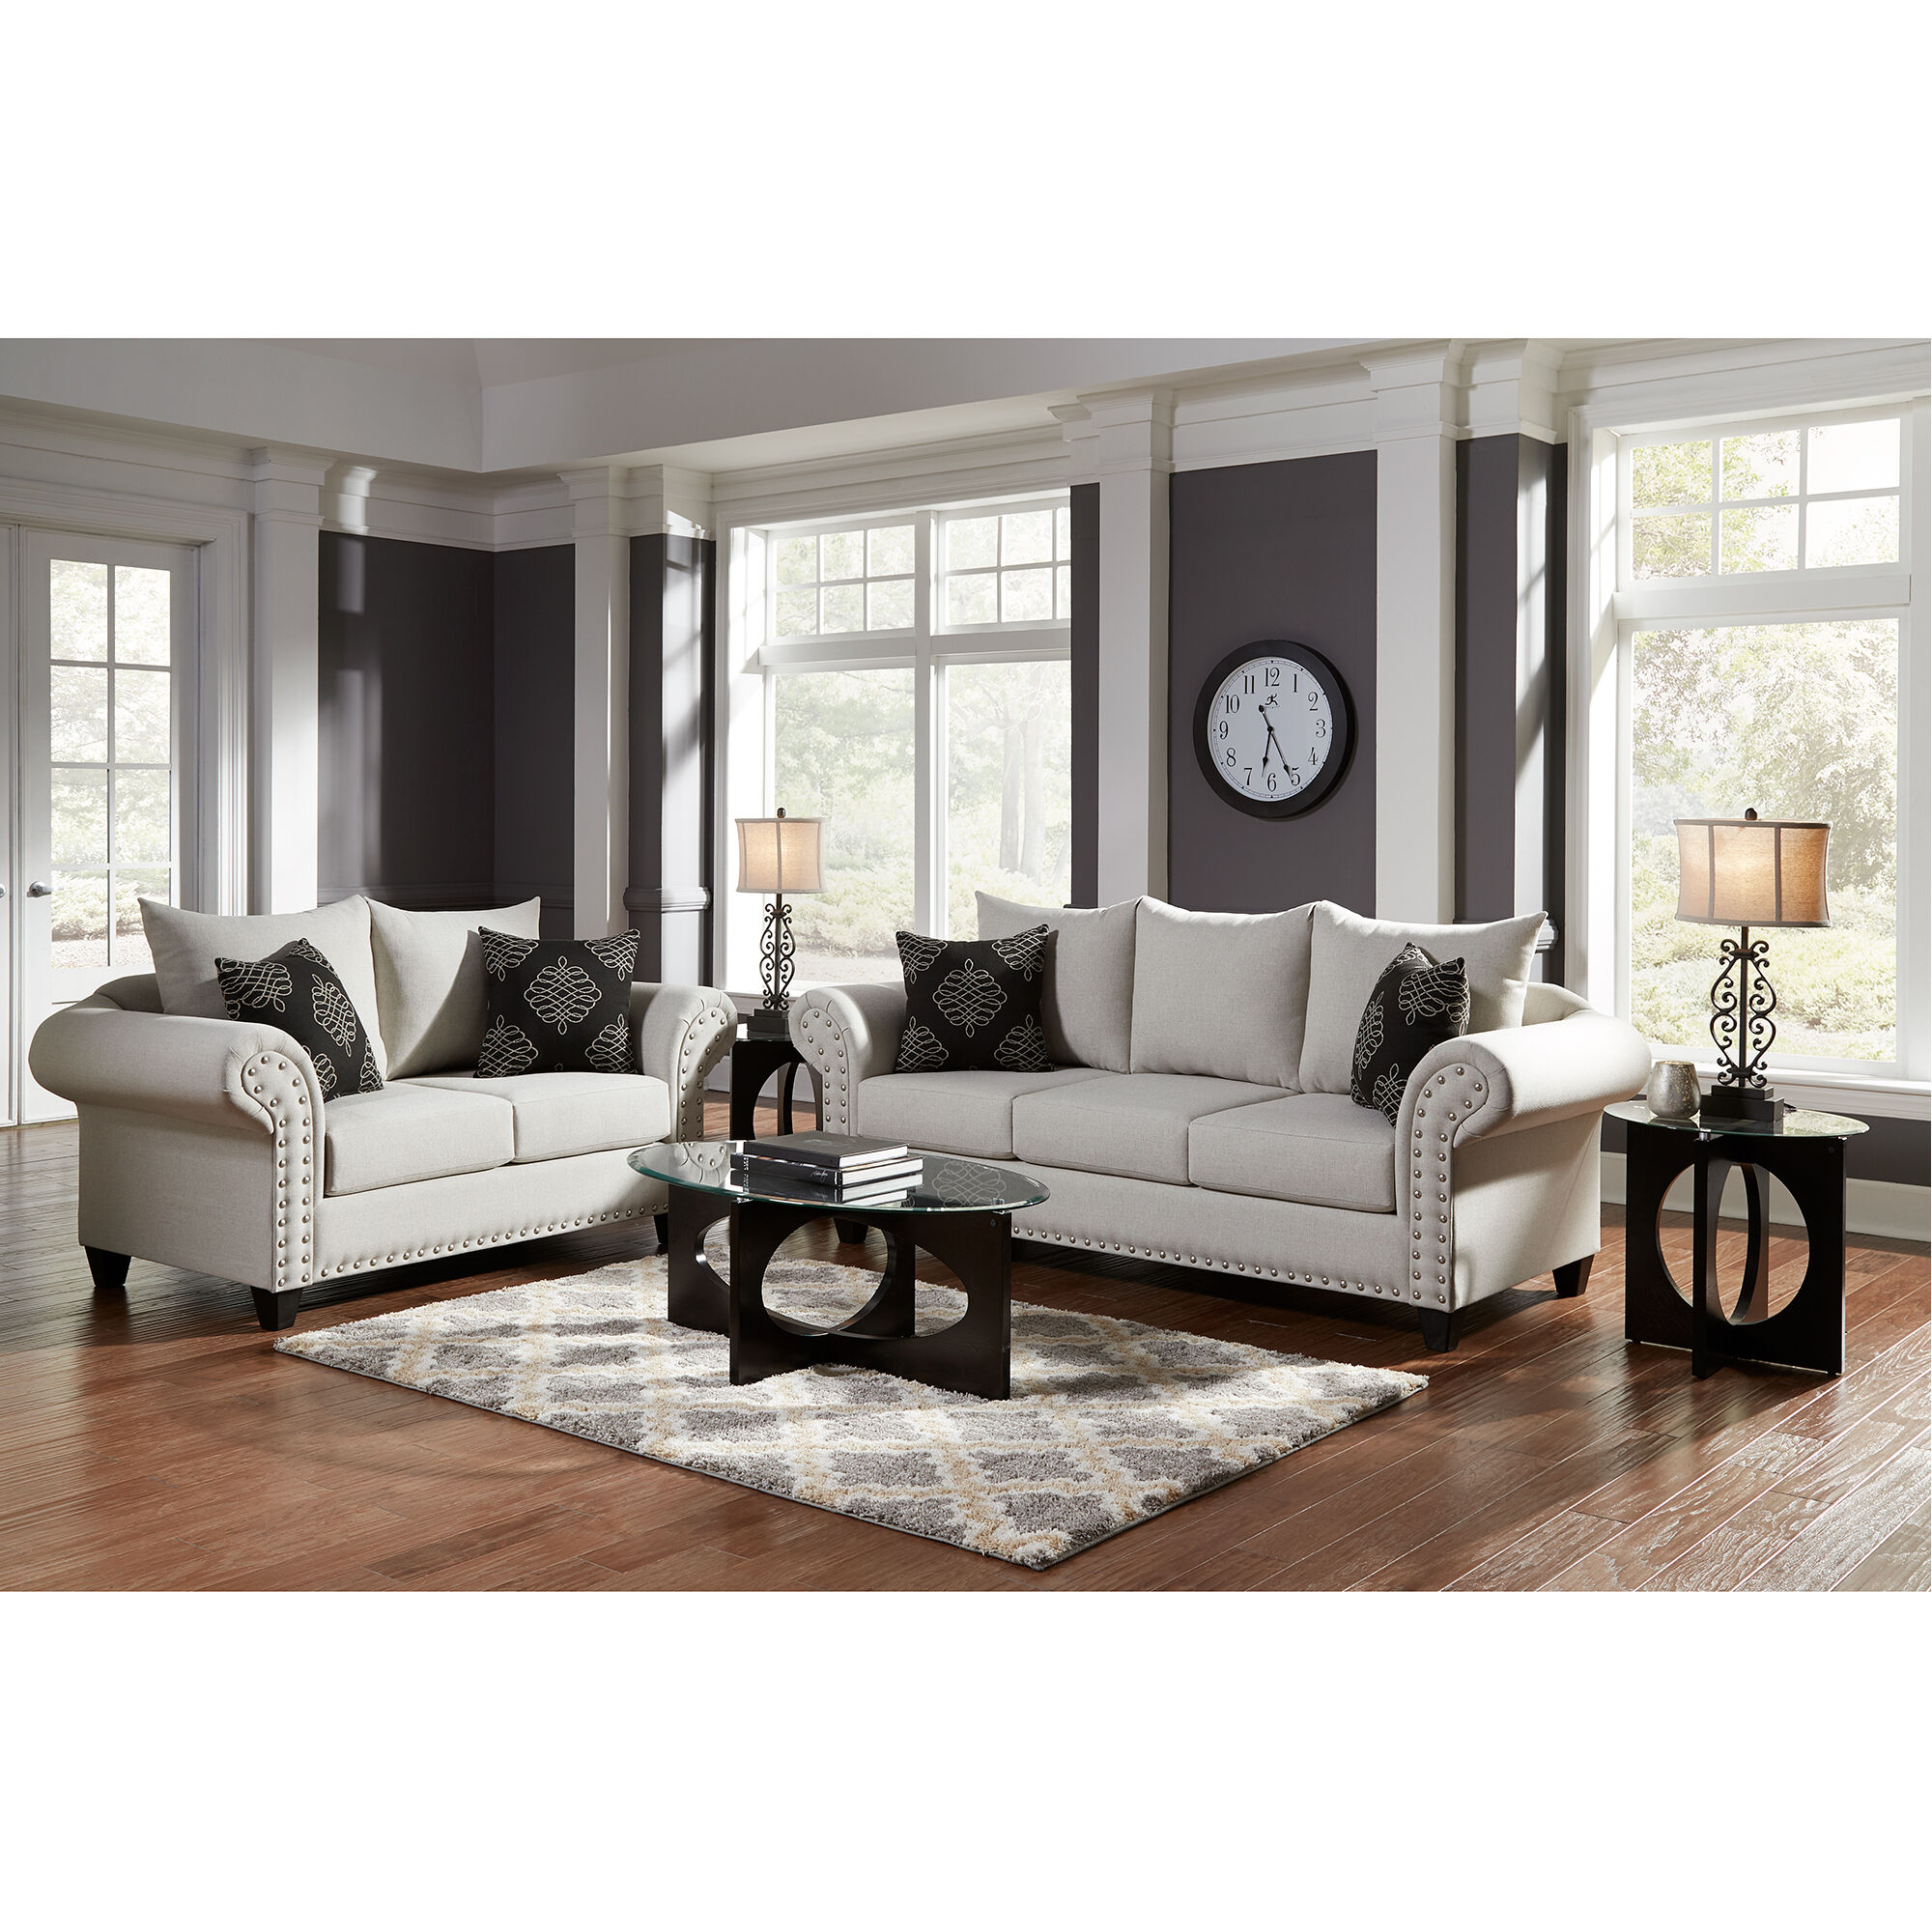 Www Rooms To Go Com: Living Room Sets With Tables